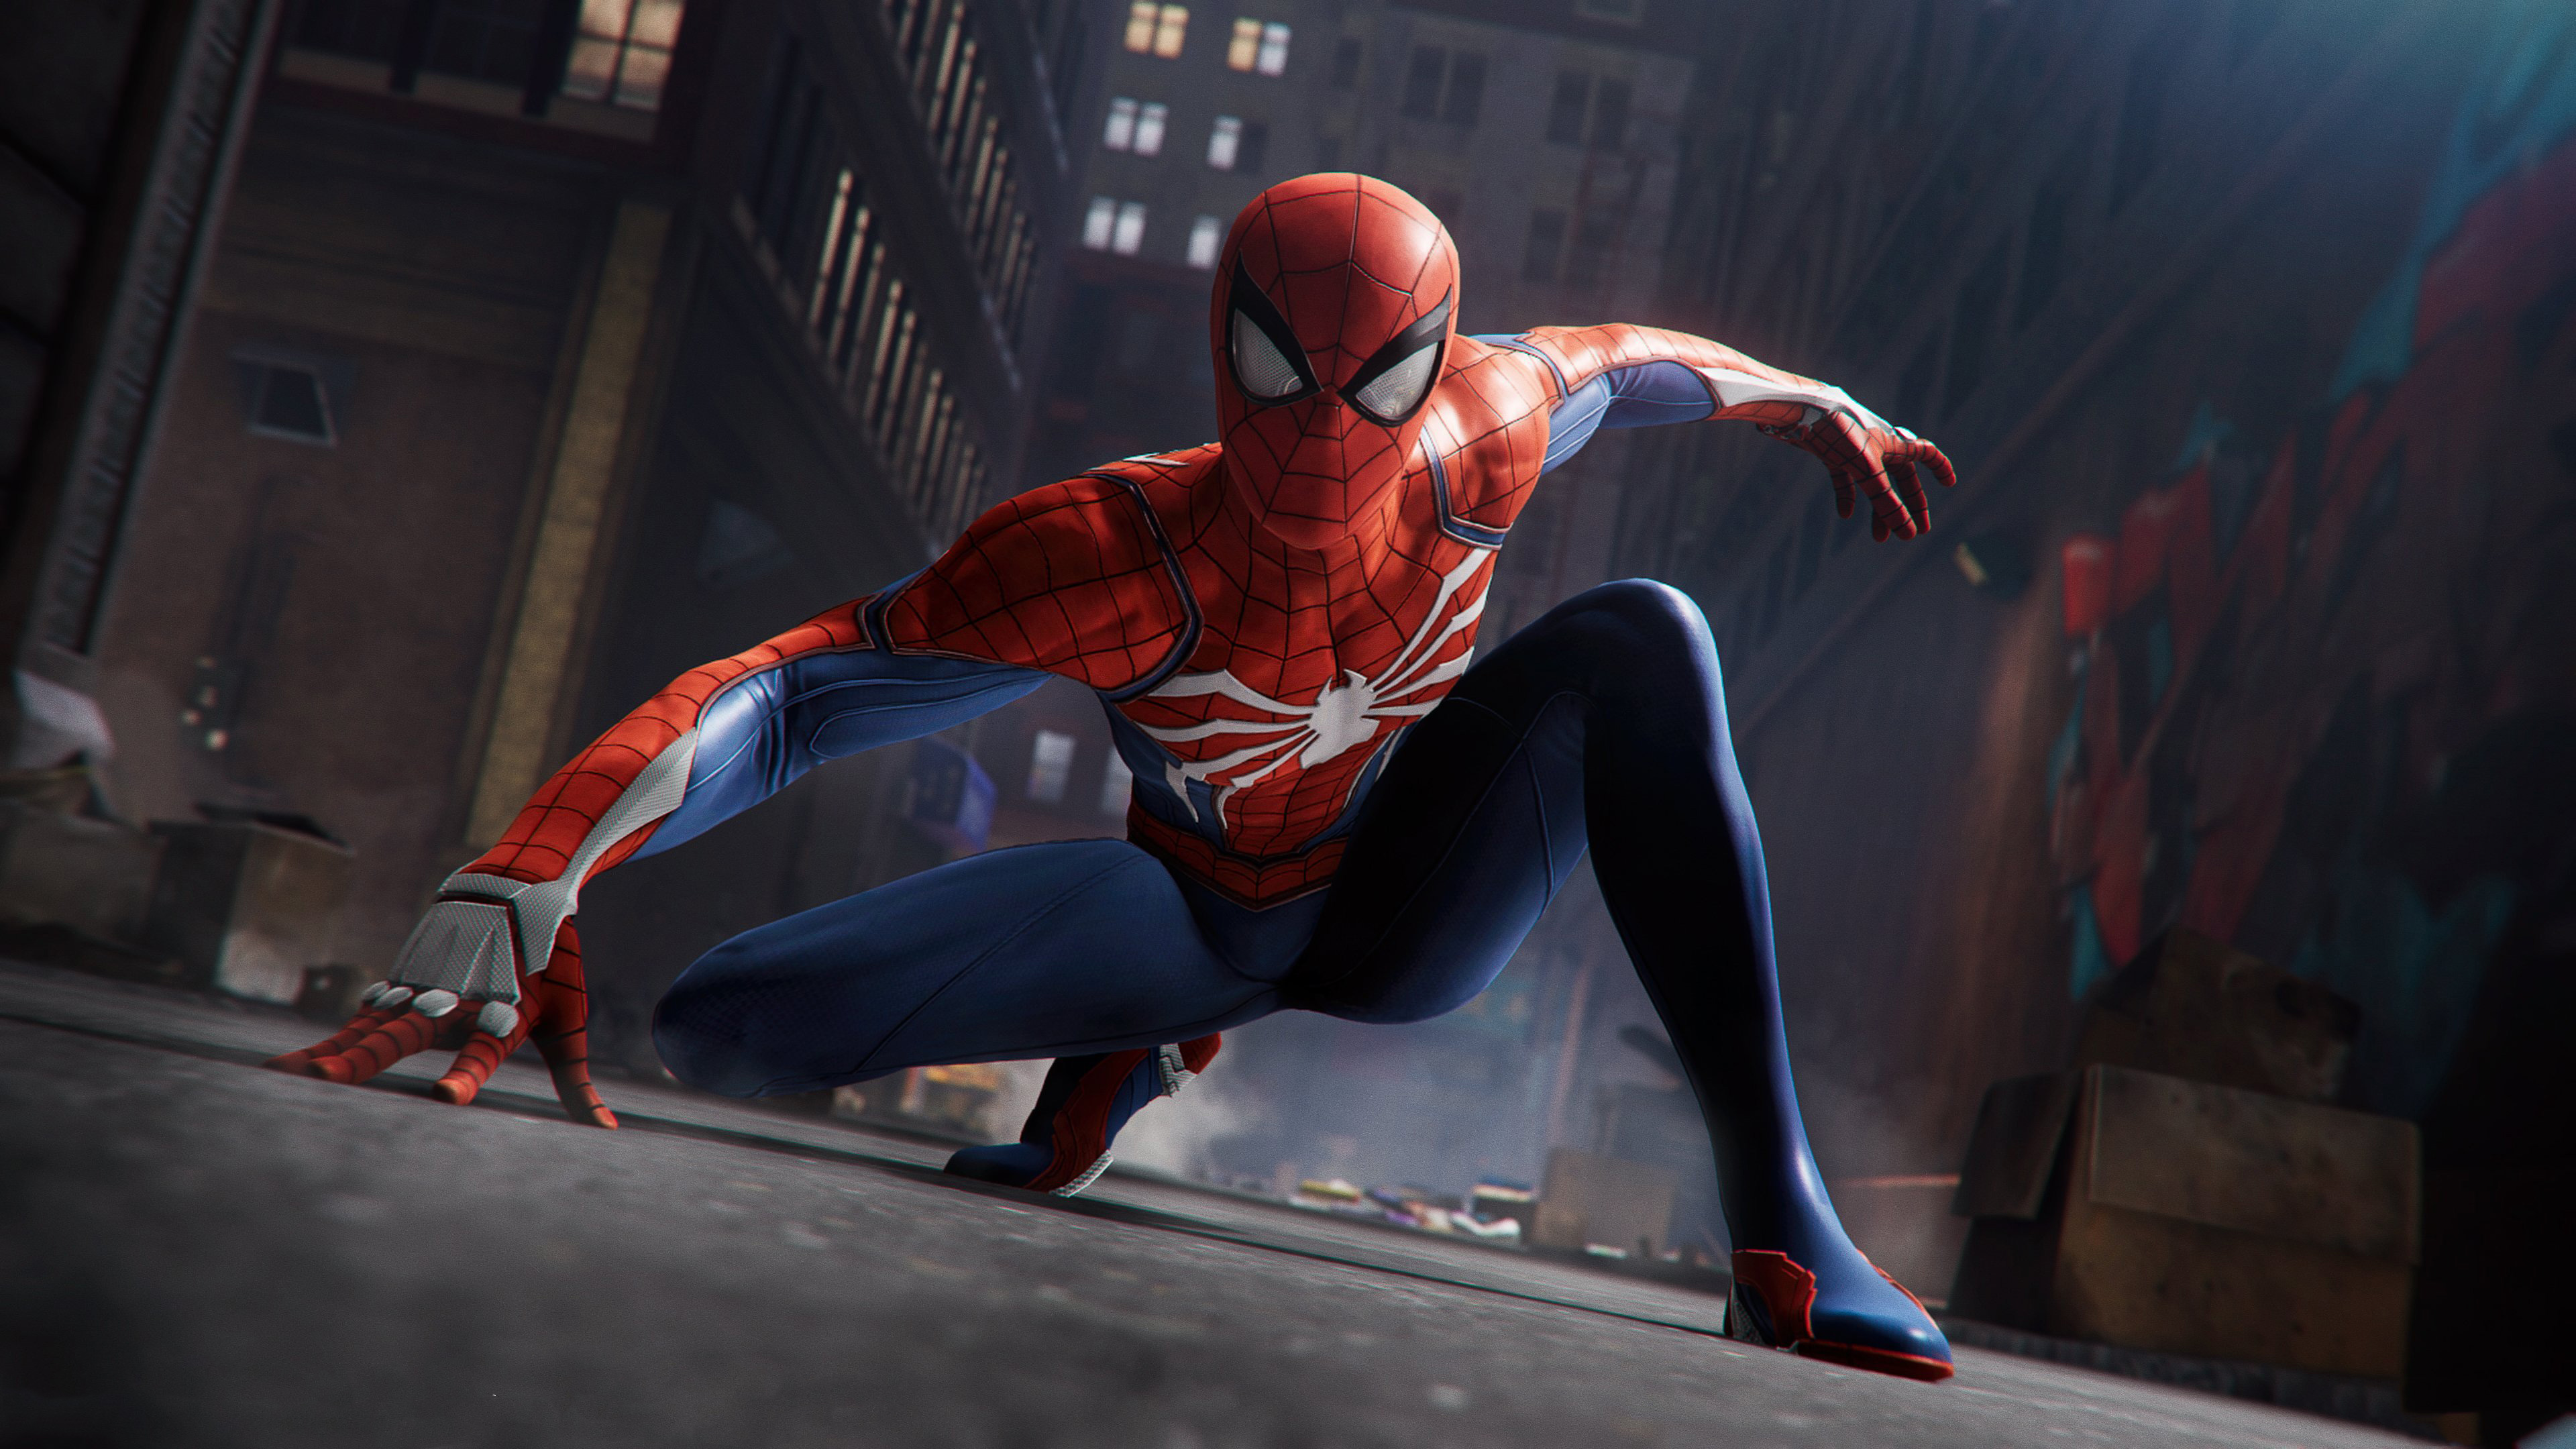 Spiderman Ps4 Pro 2018 4k, HD Games, 4k Wallpapers, Images ...